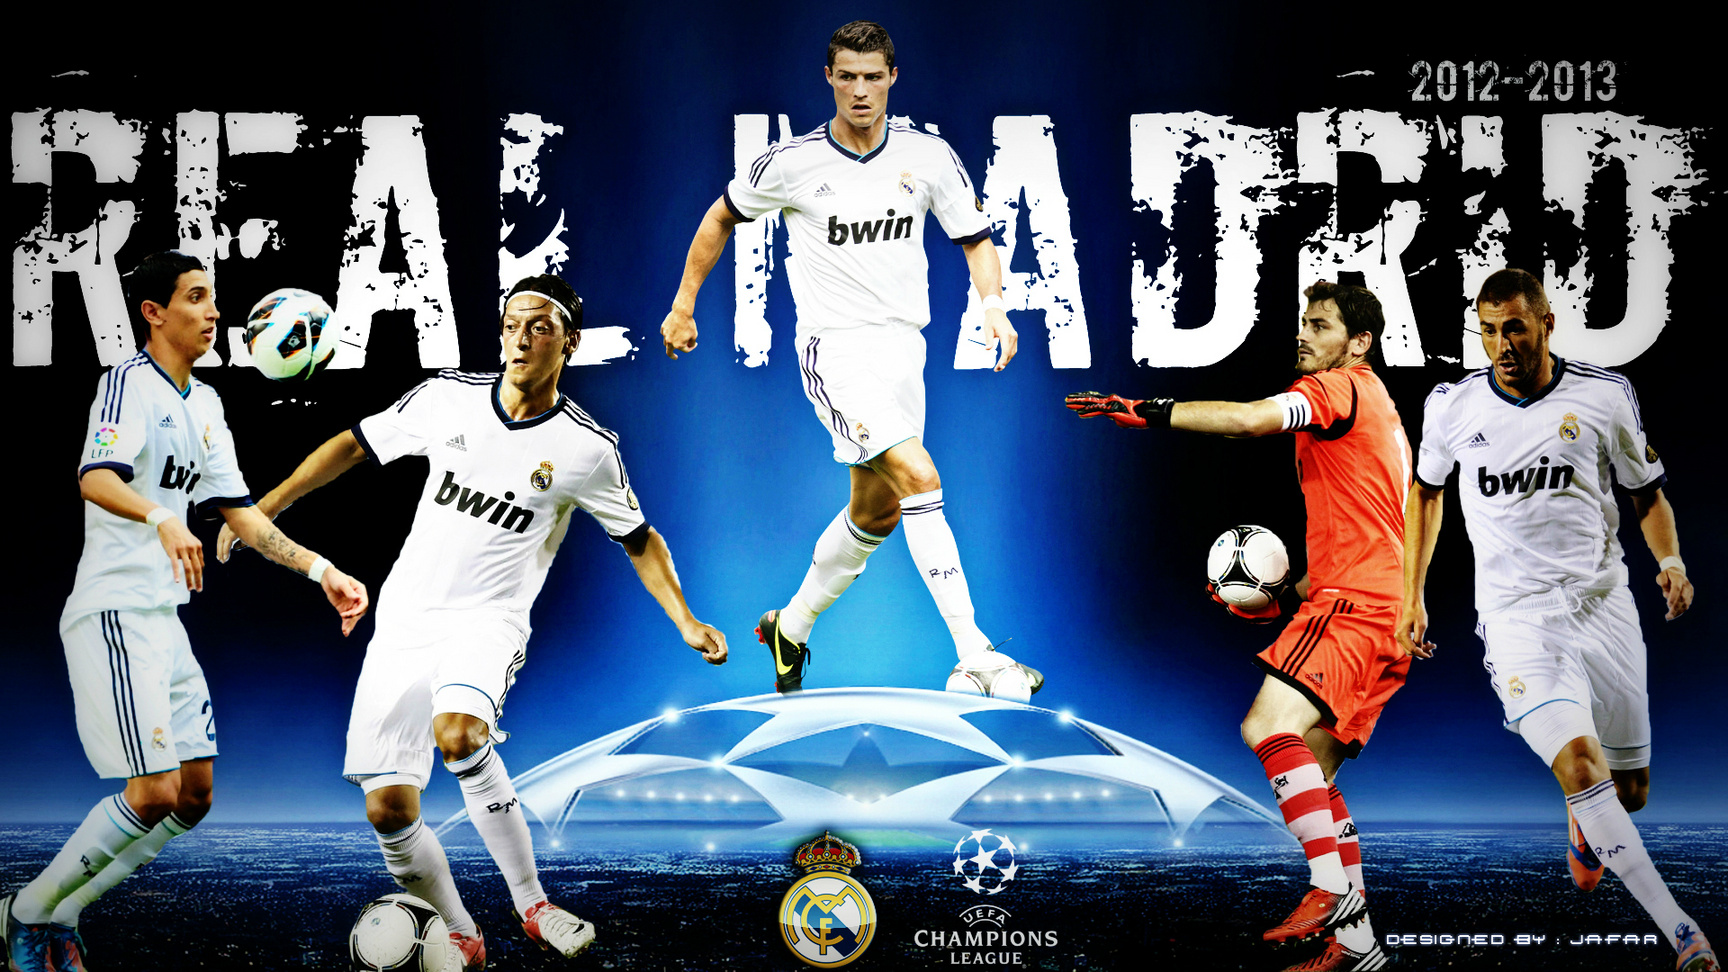 Real-Madrid-Desktop-Hd-1080p-http-www-occer-com-real-madrid-desktop-wallpape-wallpaper-wpc9008762